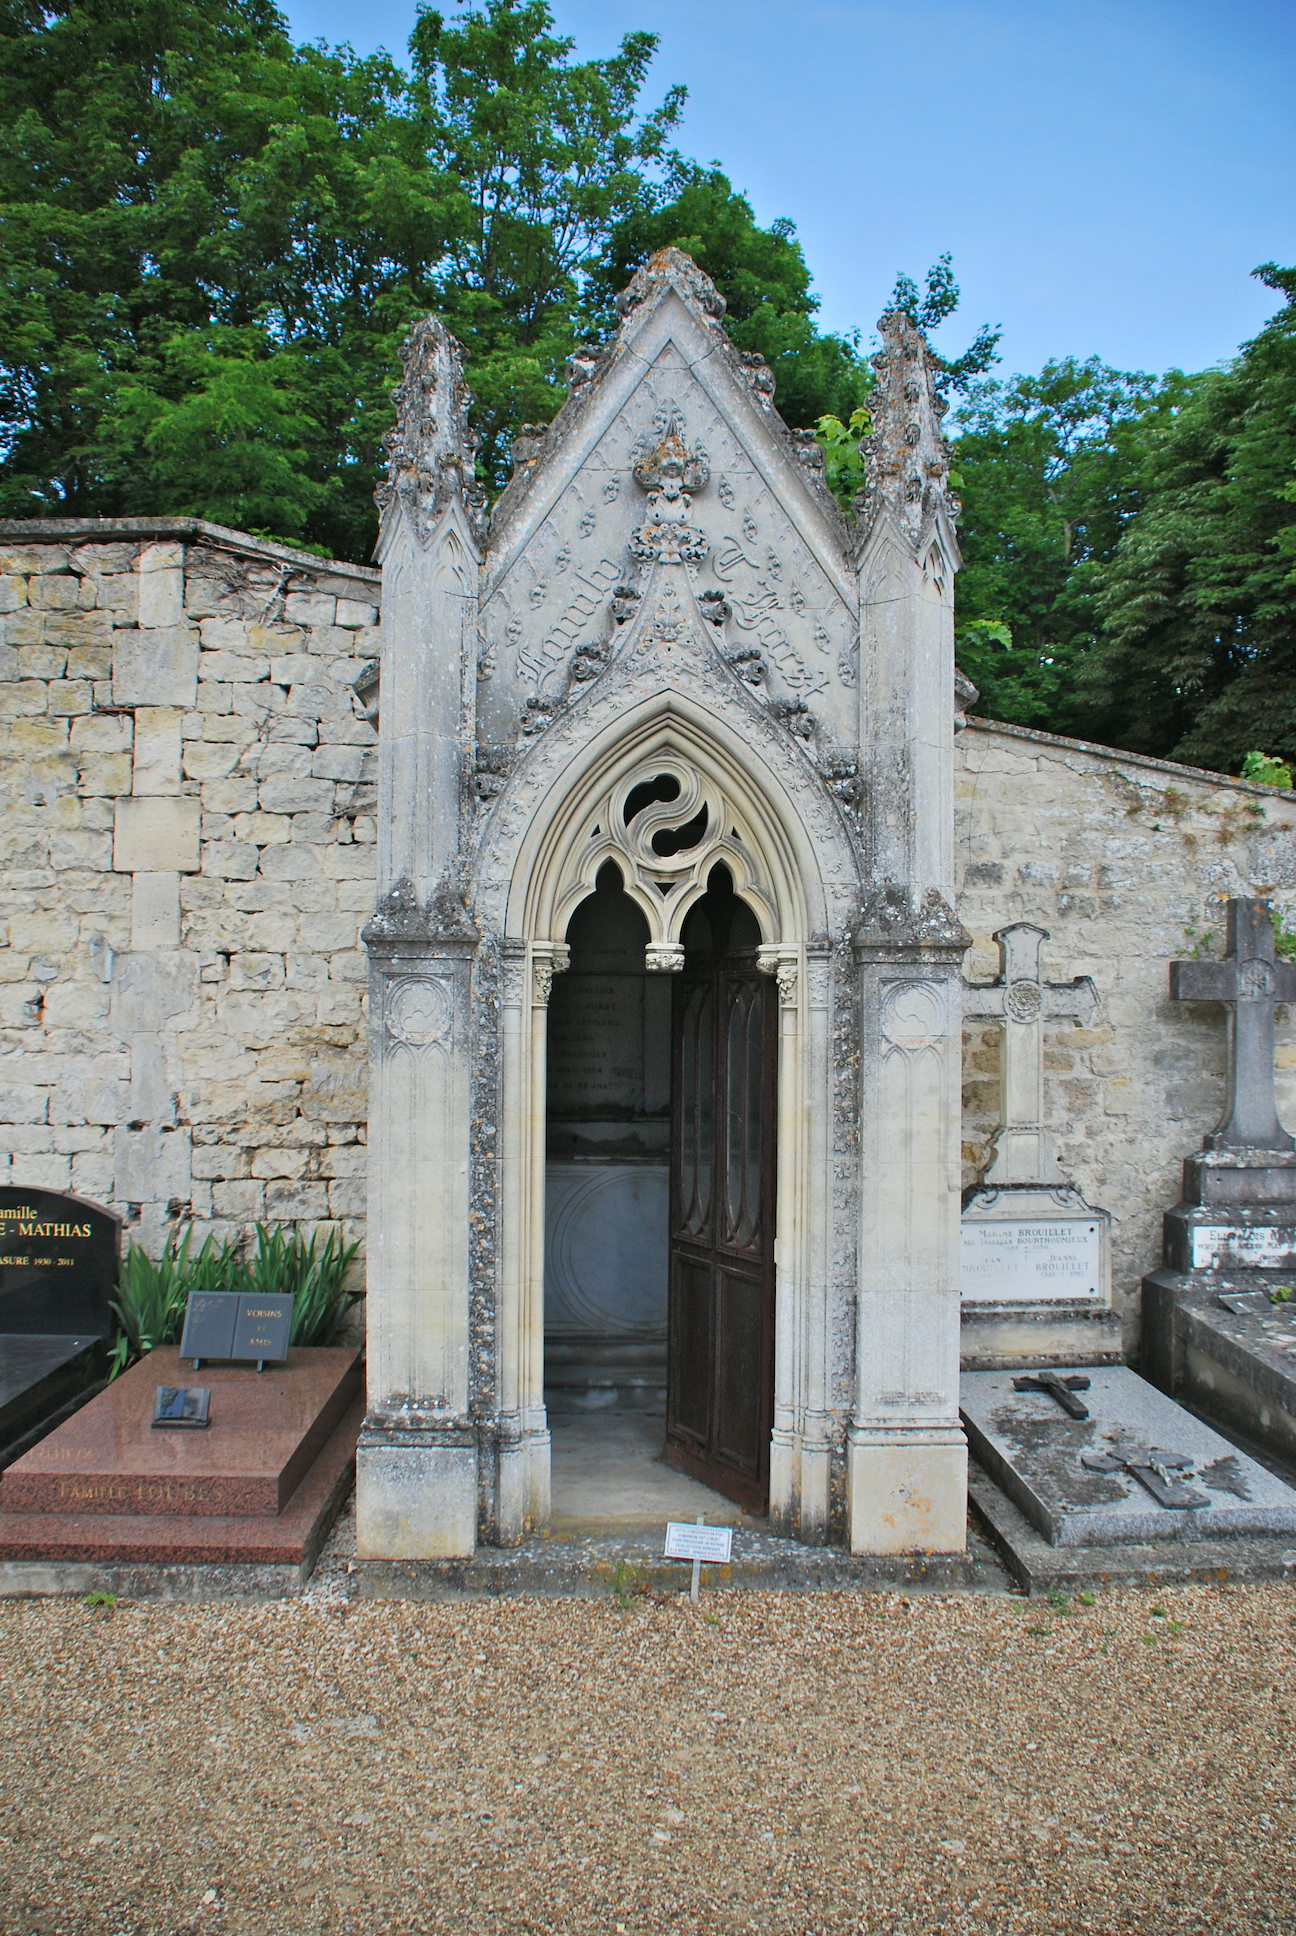 In desperate need of repair: the dilapidated door on the Thomas Hurst family tomb, which includes the graves of Thomas Hurst (1800 -1864), his son Thomas Hurst (1832-1893) and other relations. Photo: John Gilmore